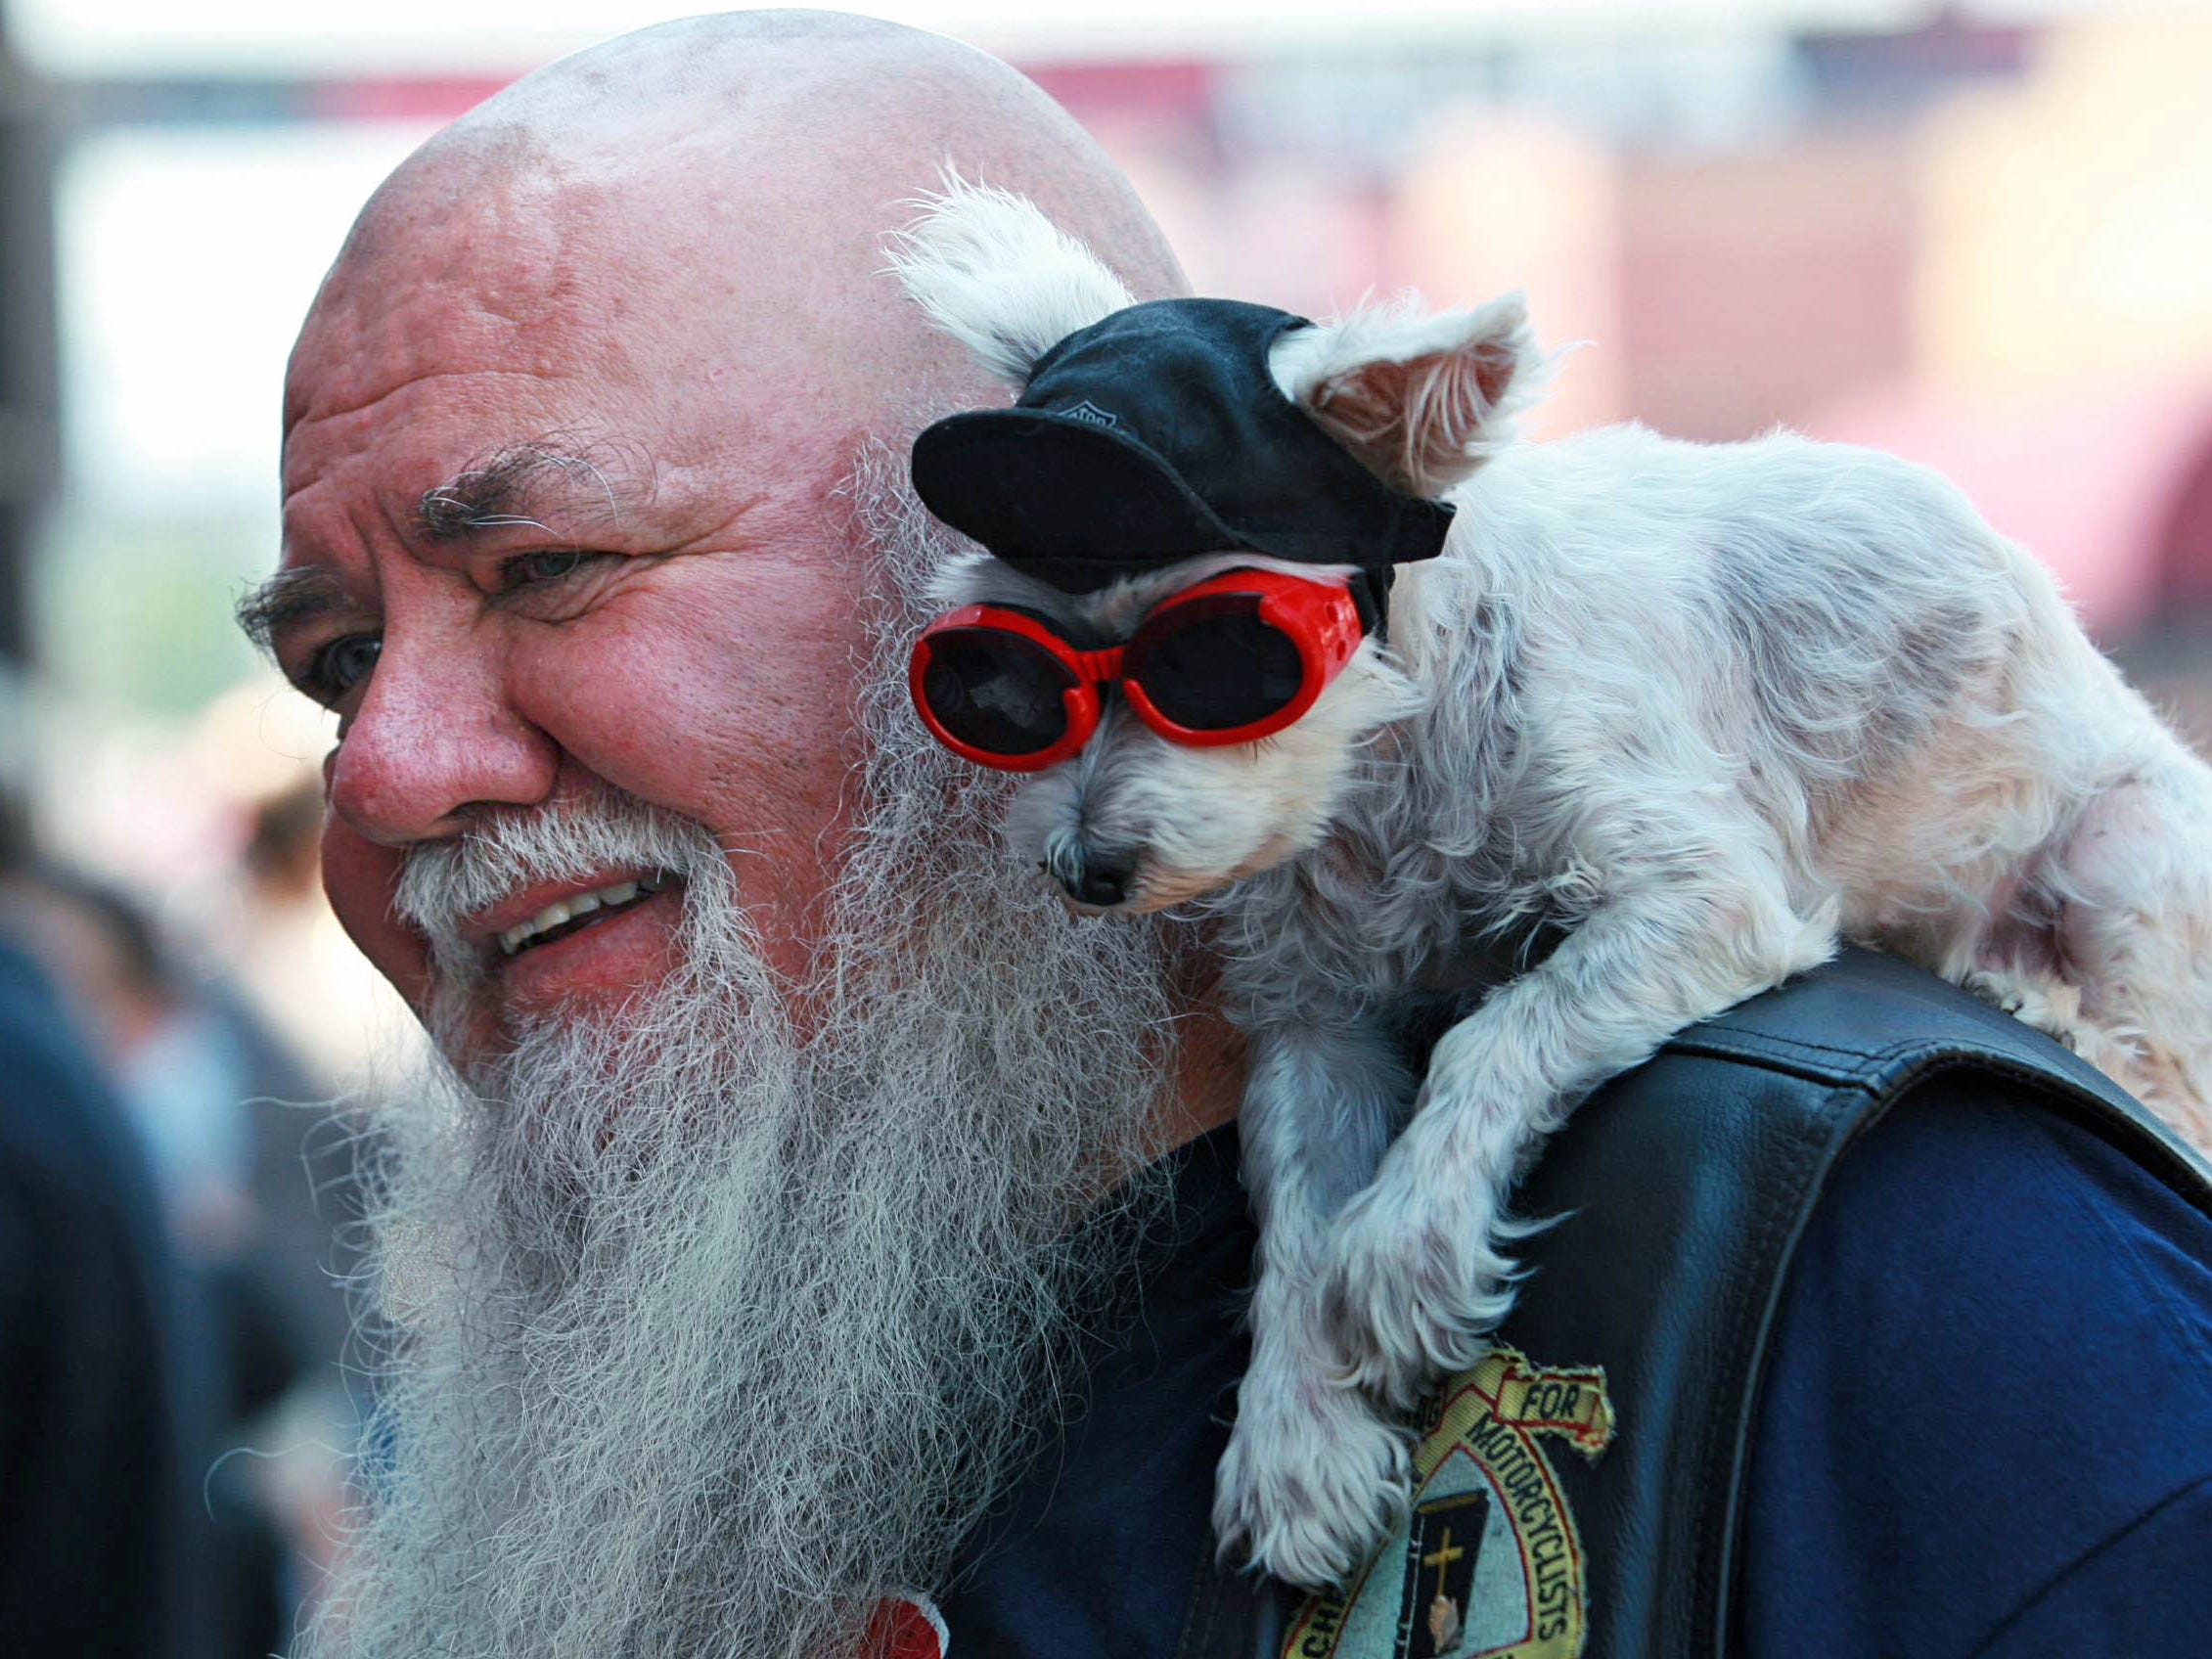 2012:  Jim Carson and his dog Booboo hang out on Lazelle Street in downtown Sturgis. Booboo was born during the rally 19 years ago. Carson, from Gillette, Wyoming, has been coming to the event for more than 40 years.